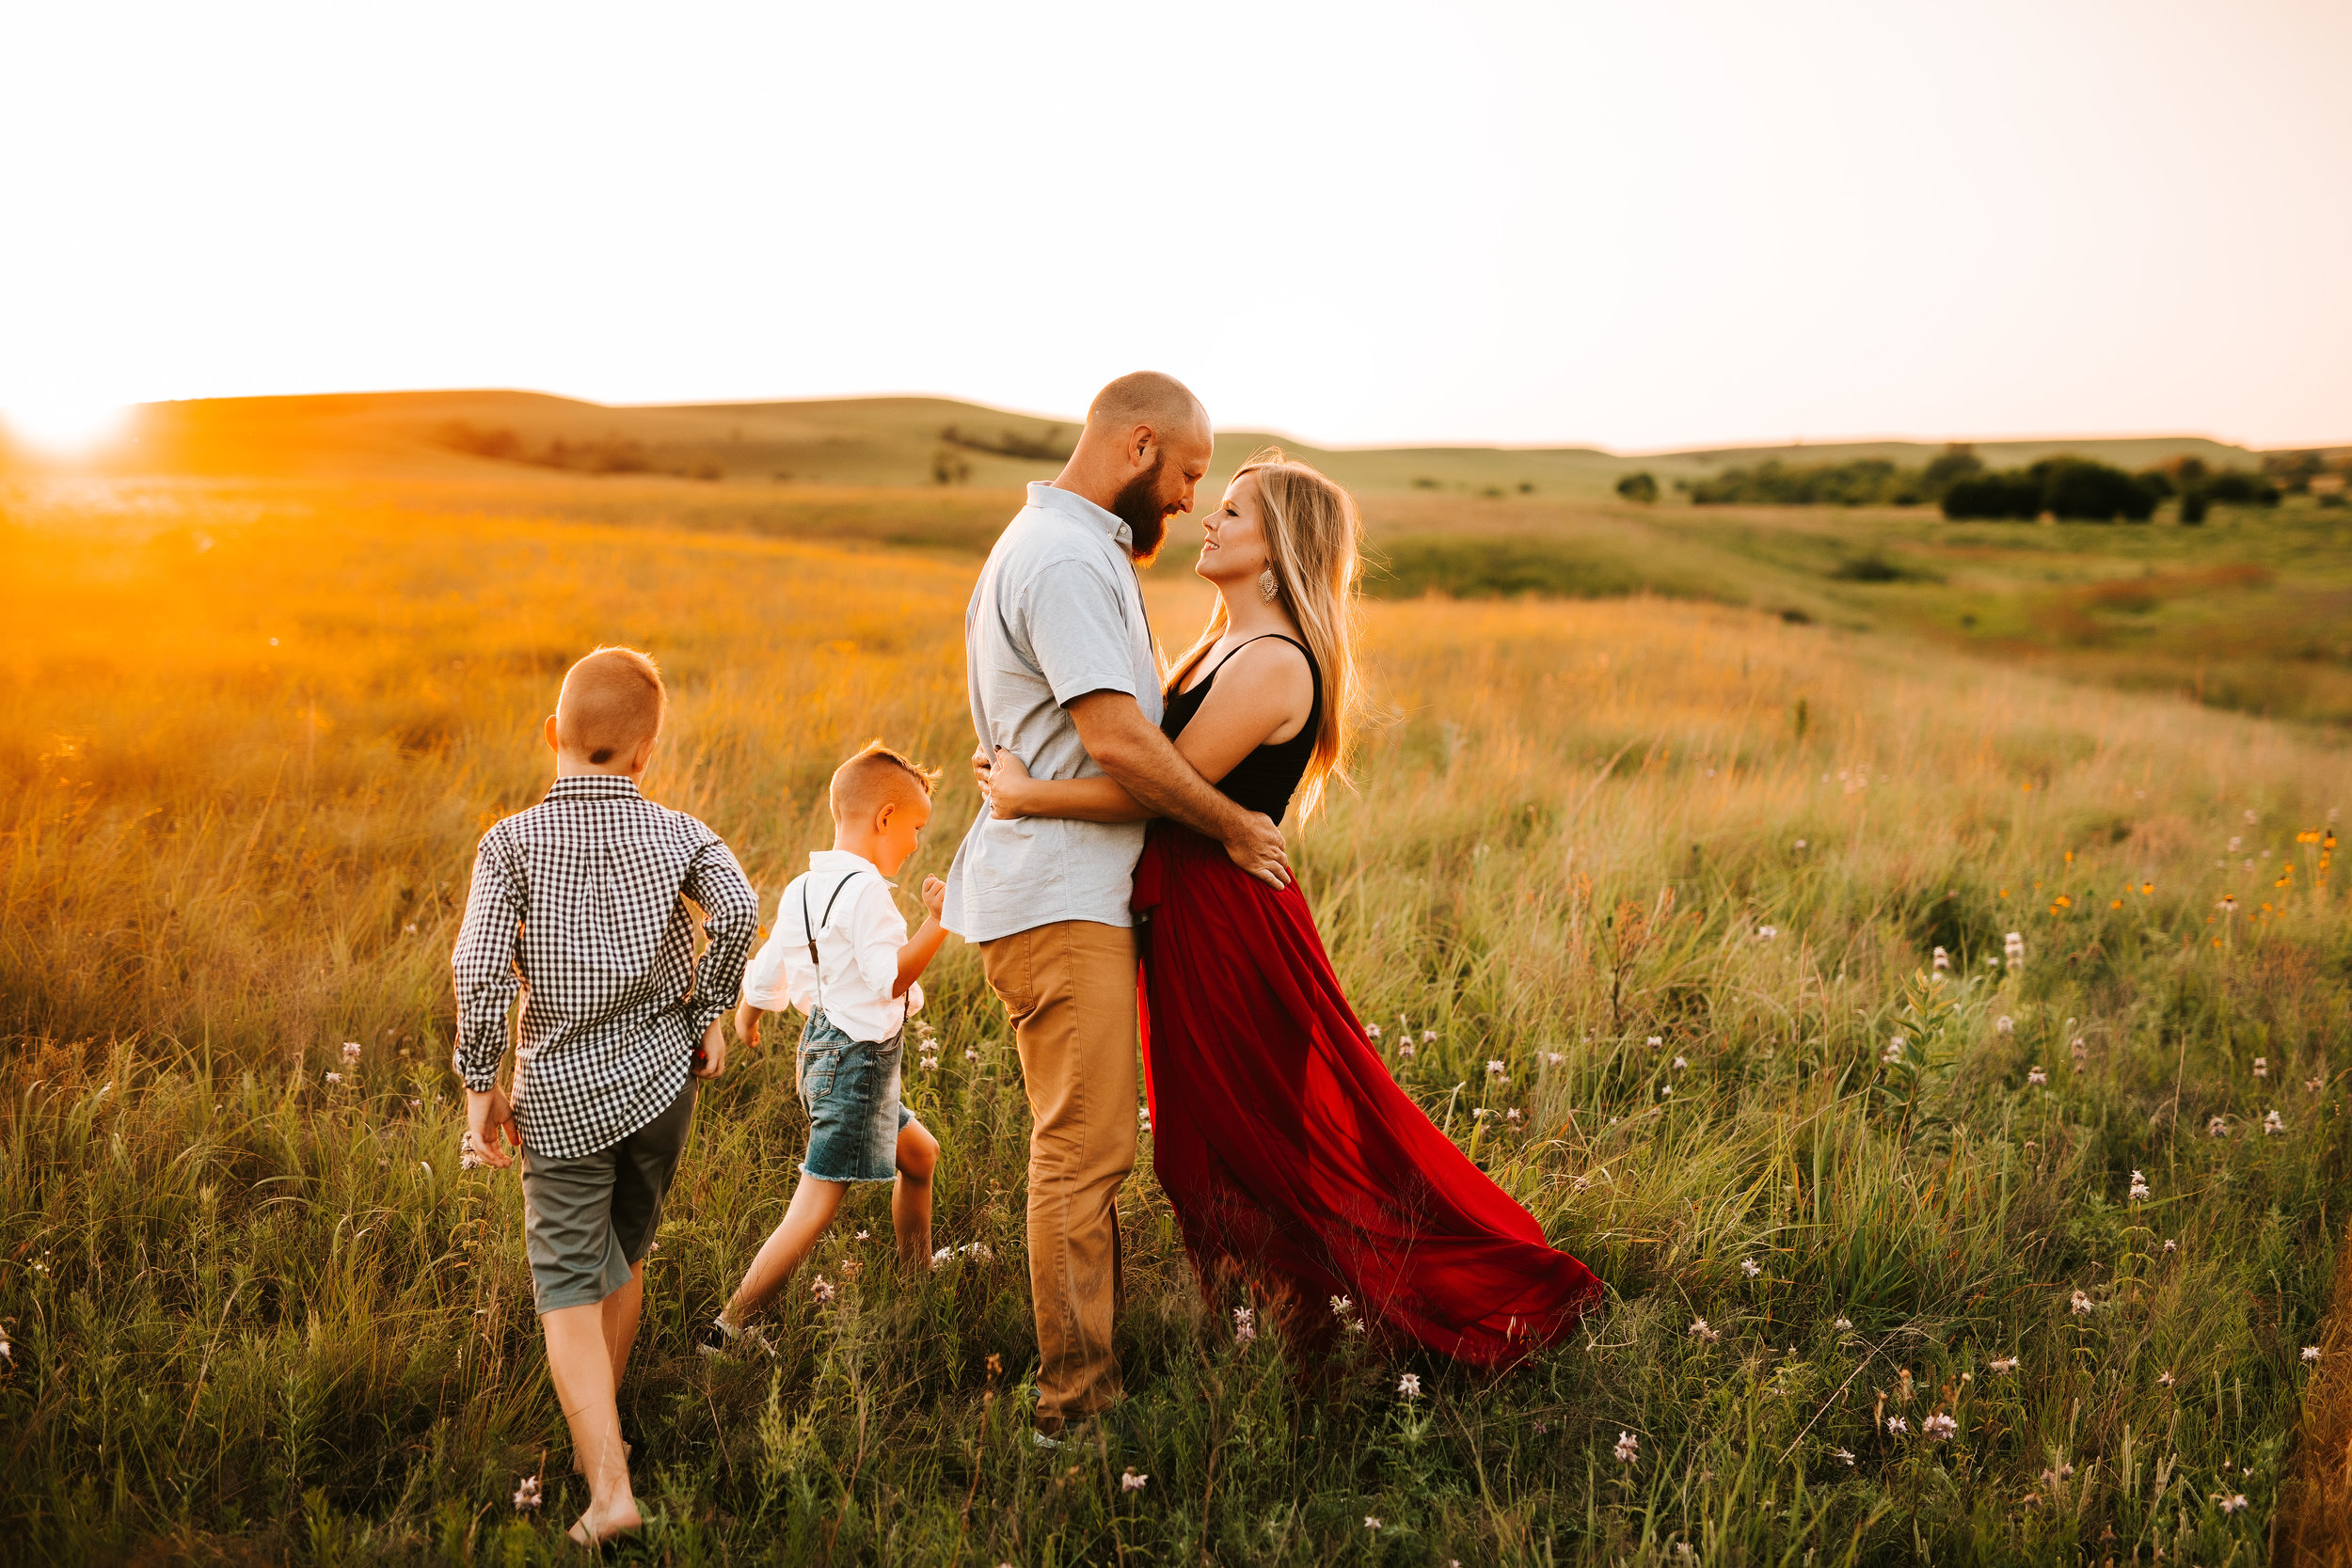 Hi, I'm Gina! - I am......wife to Adam....momma to two gorgeous boys - Sutton and Ren....a Jesus follower....a Dr Pepper and chocolate chip cookie lover....a photographer of people for the past 15 years (more if you count before I began my business!)....so excited to meet you!